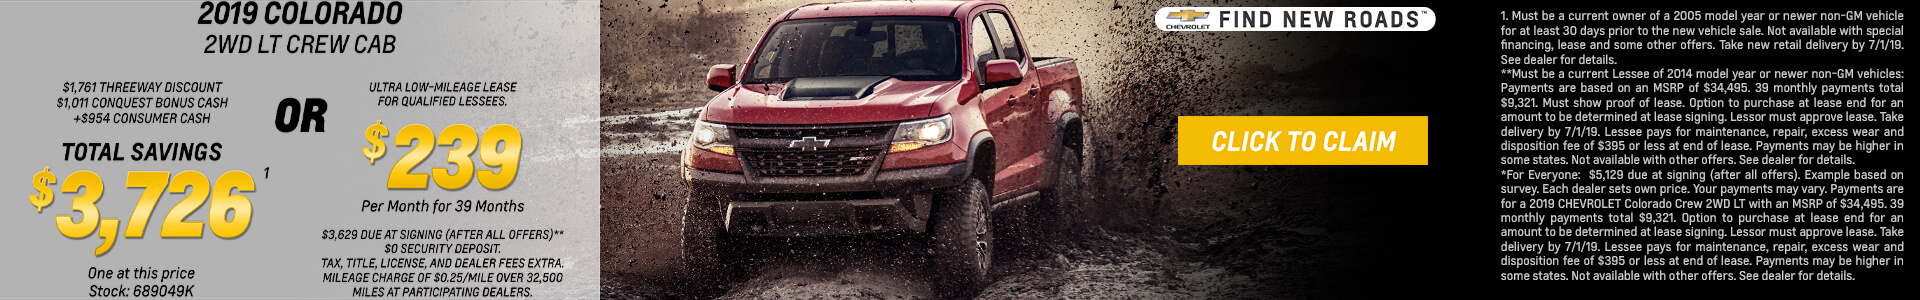 2019 Chevy Colorado Lease for $239